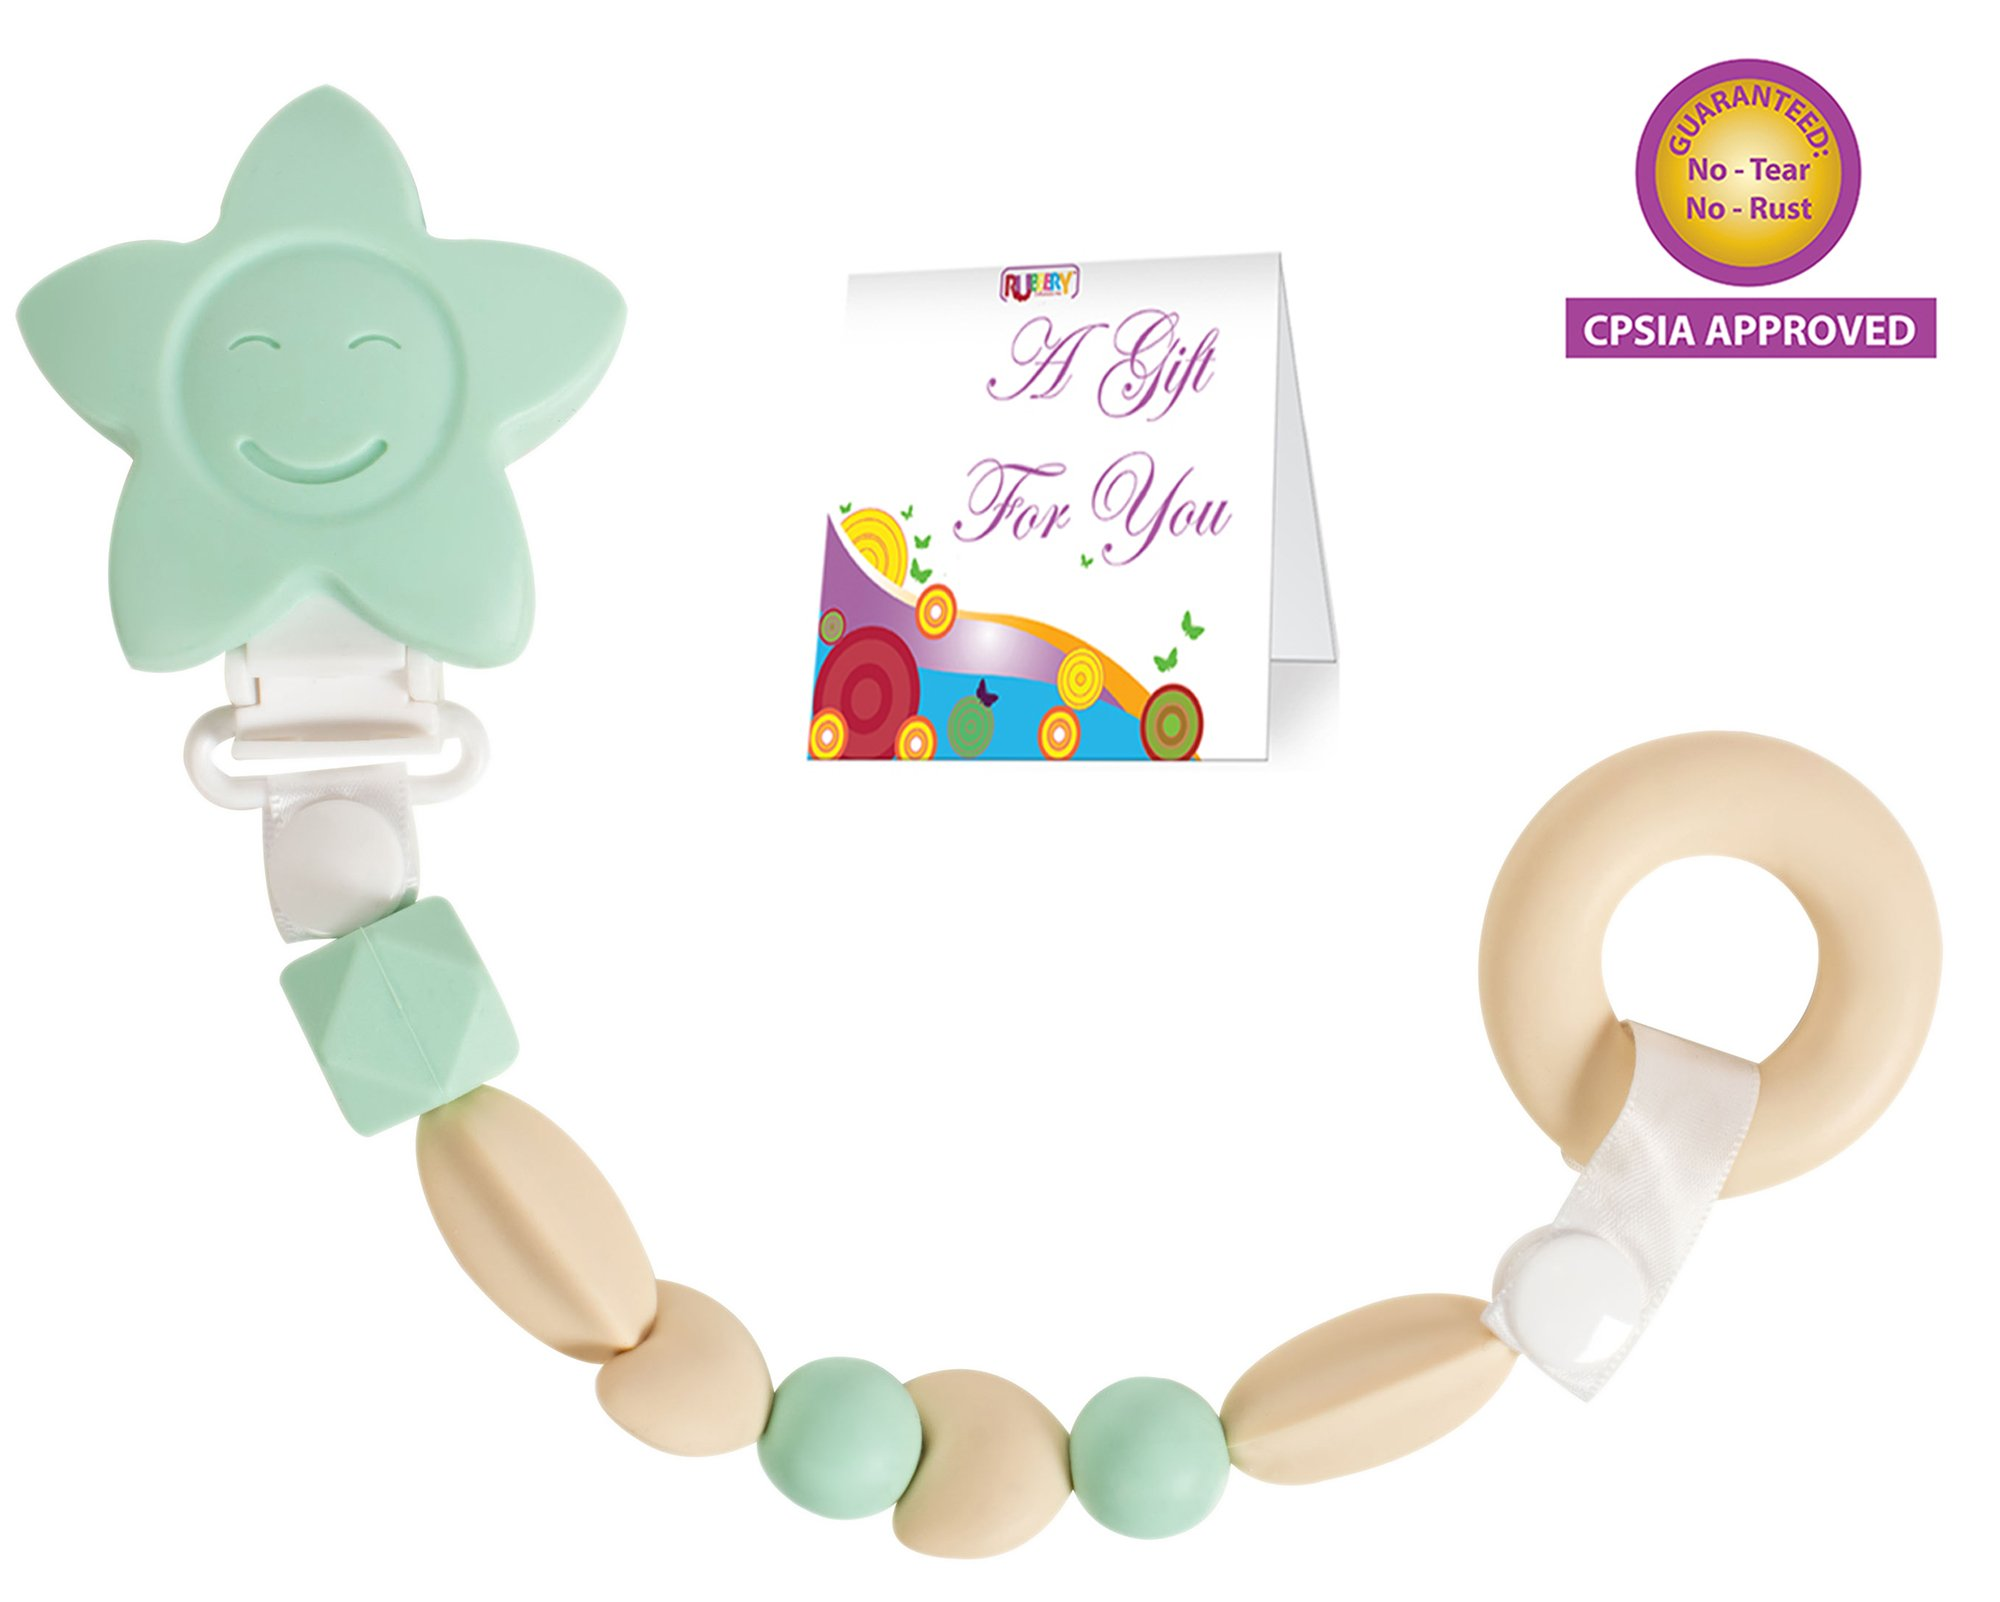 Teether Toy Pacifier Clip - Baby Girl or Boy Star Beaded Silicone Teething Toy and Pacifier Clip - Circle Theether Included - Mint Green Blue Color - Greeting Card Included for Baby Gifts by Rubbery Enhances me